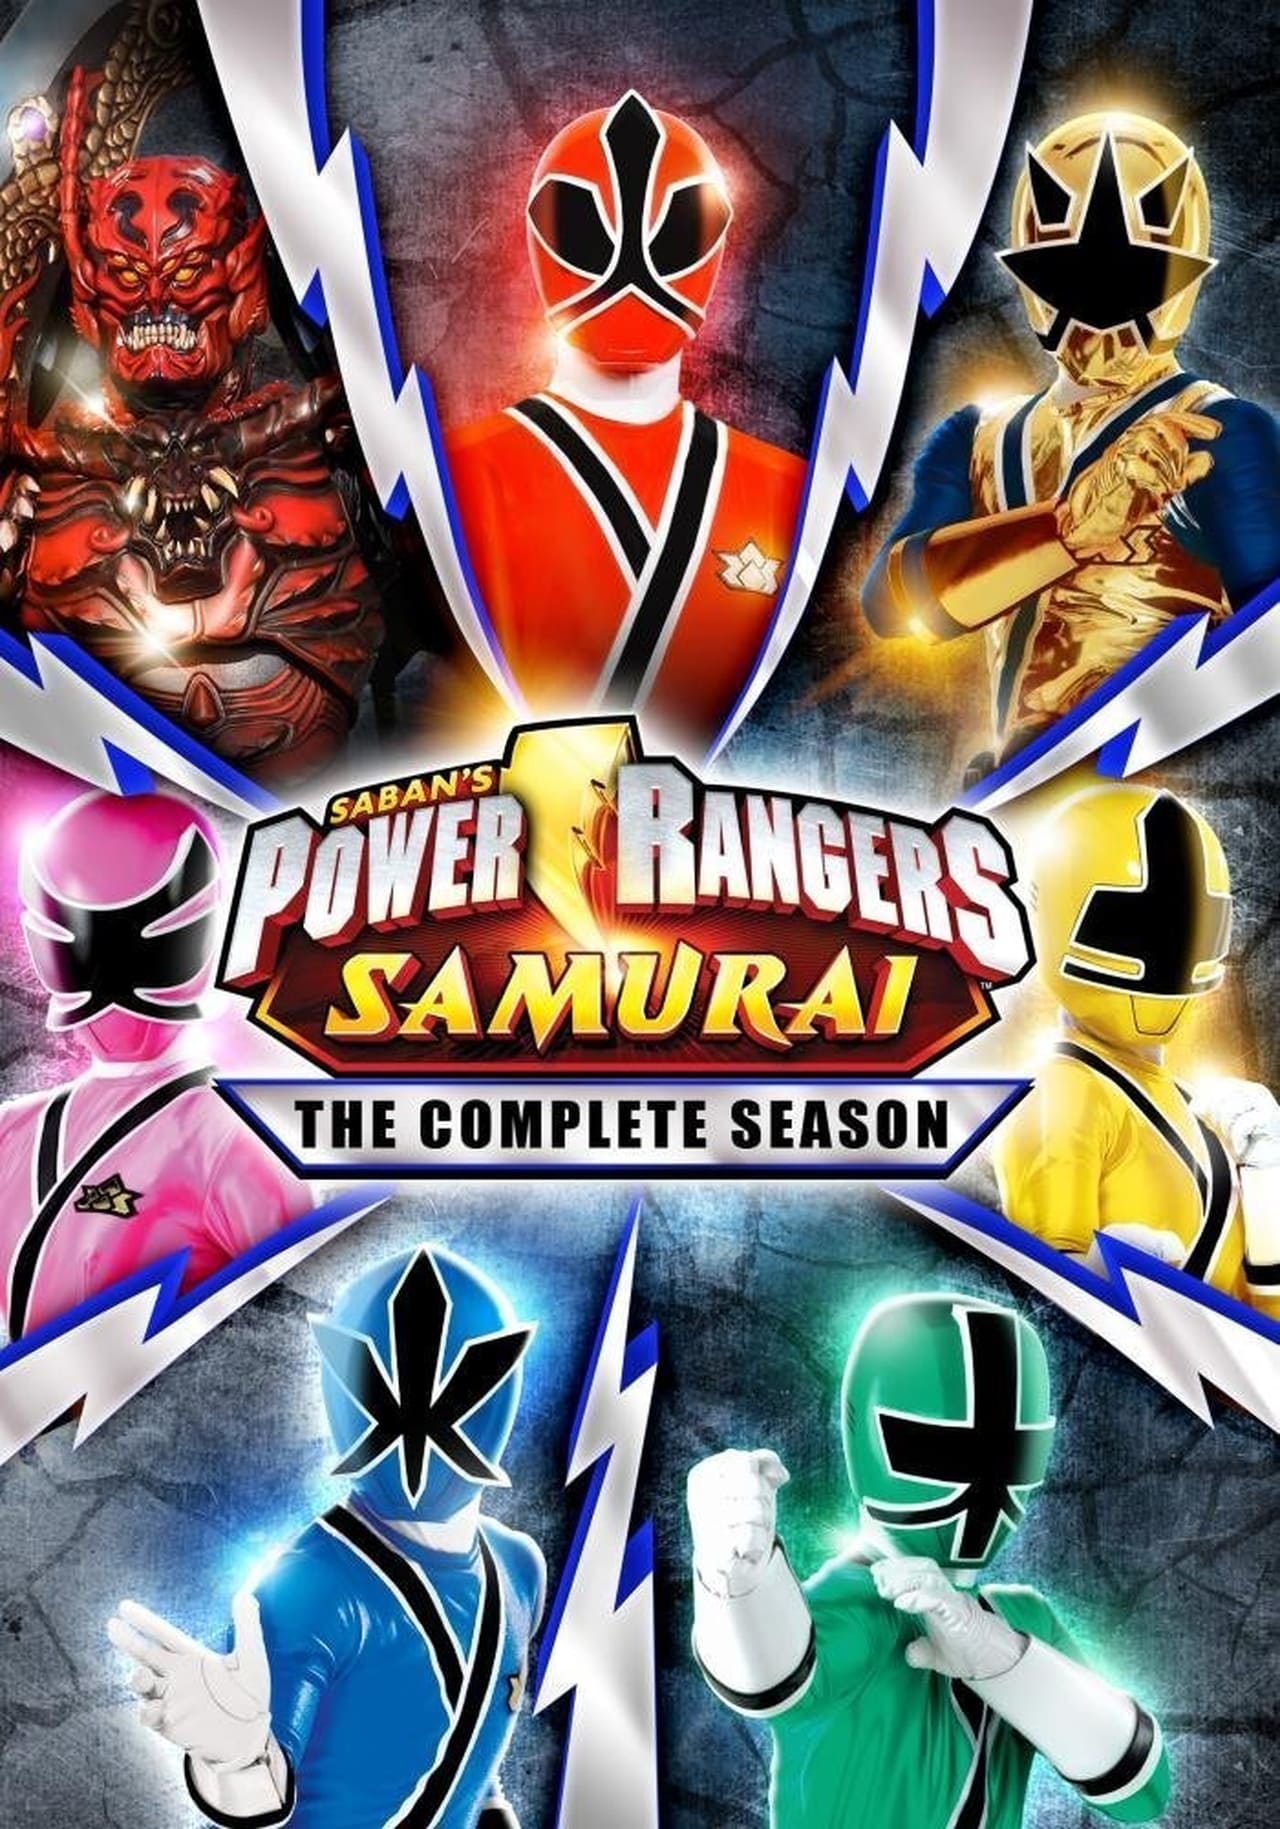 Putlocker Power Rangers Season 18 (2011)